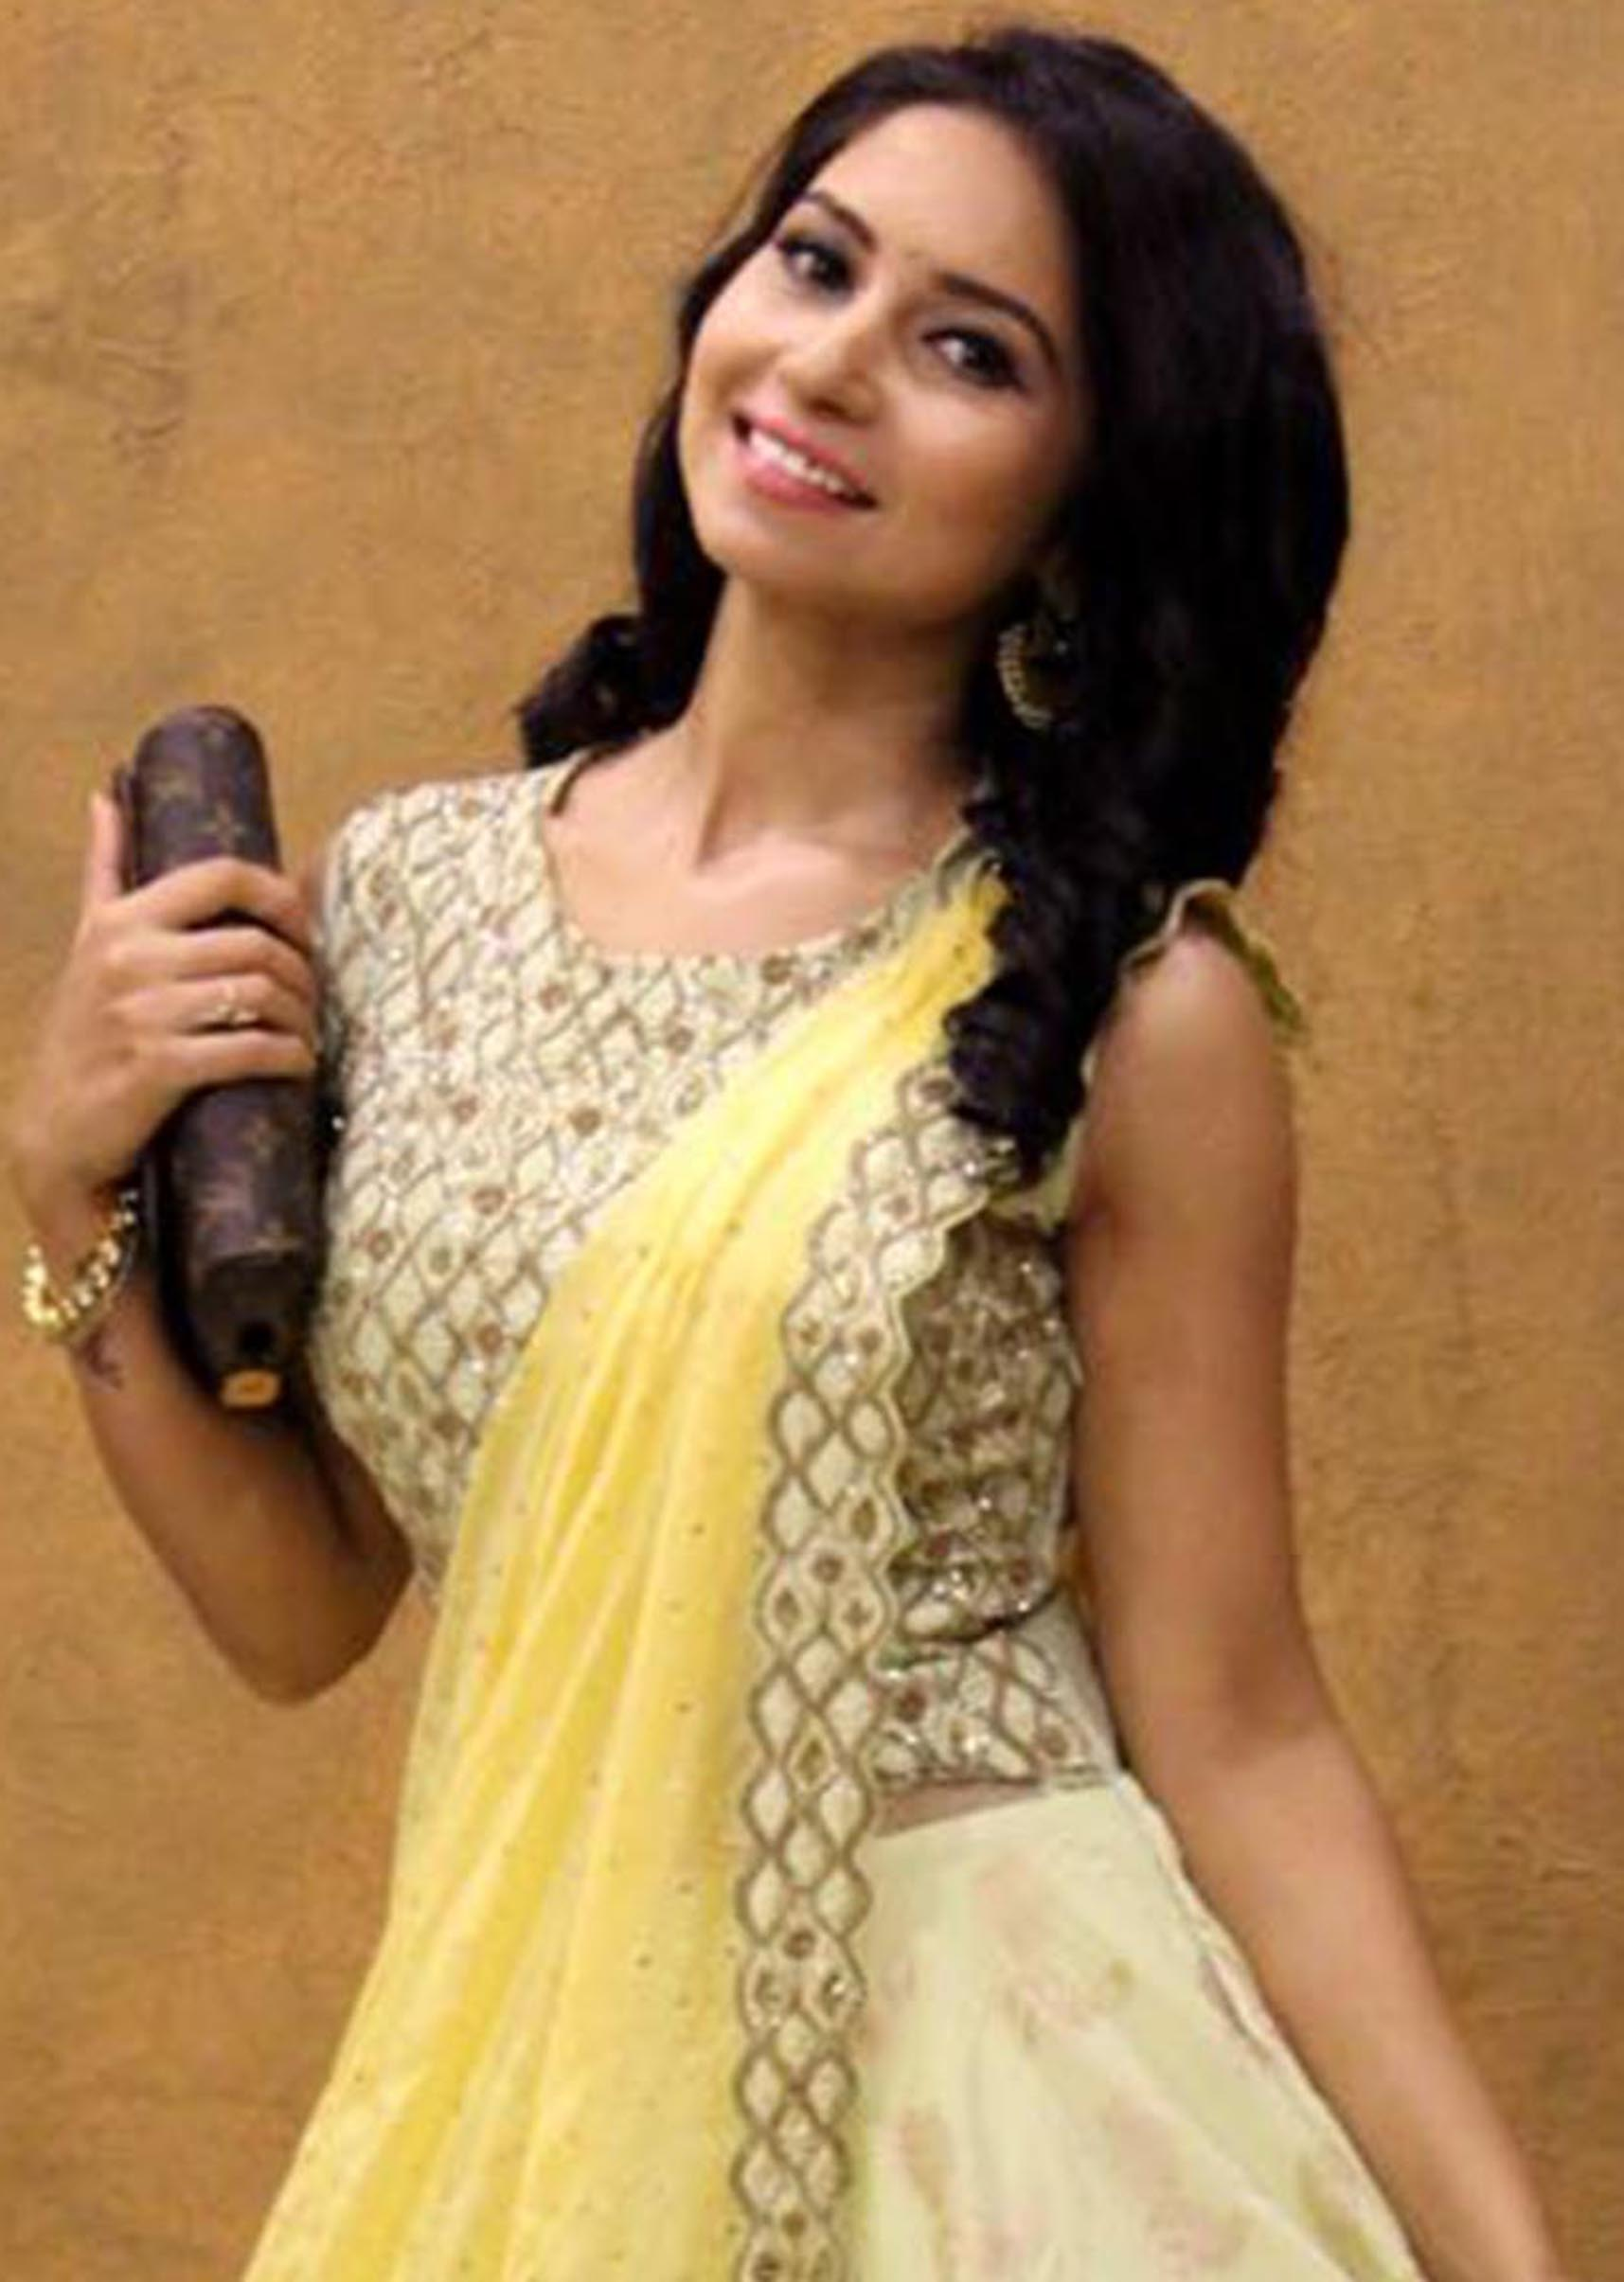 Vinny Arora 	2007 Vinny Arora 	2007 new photo